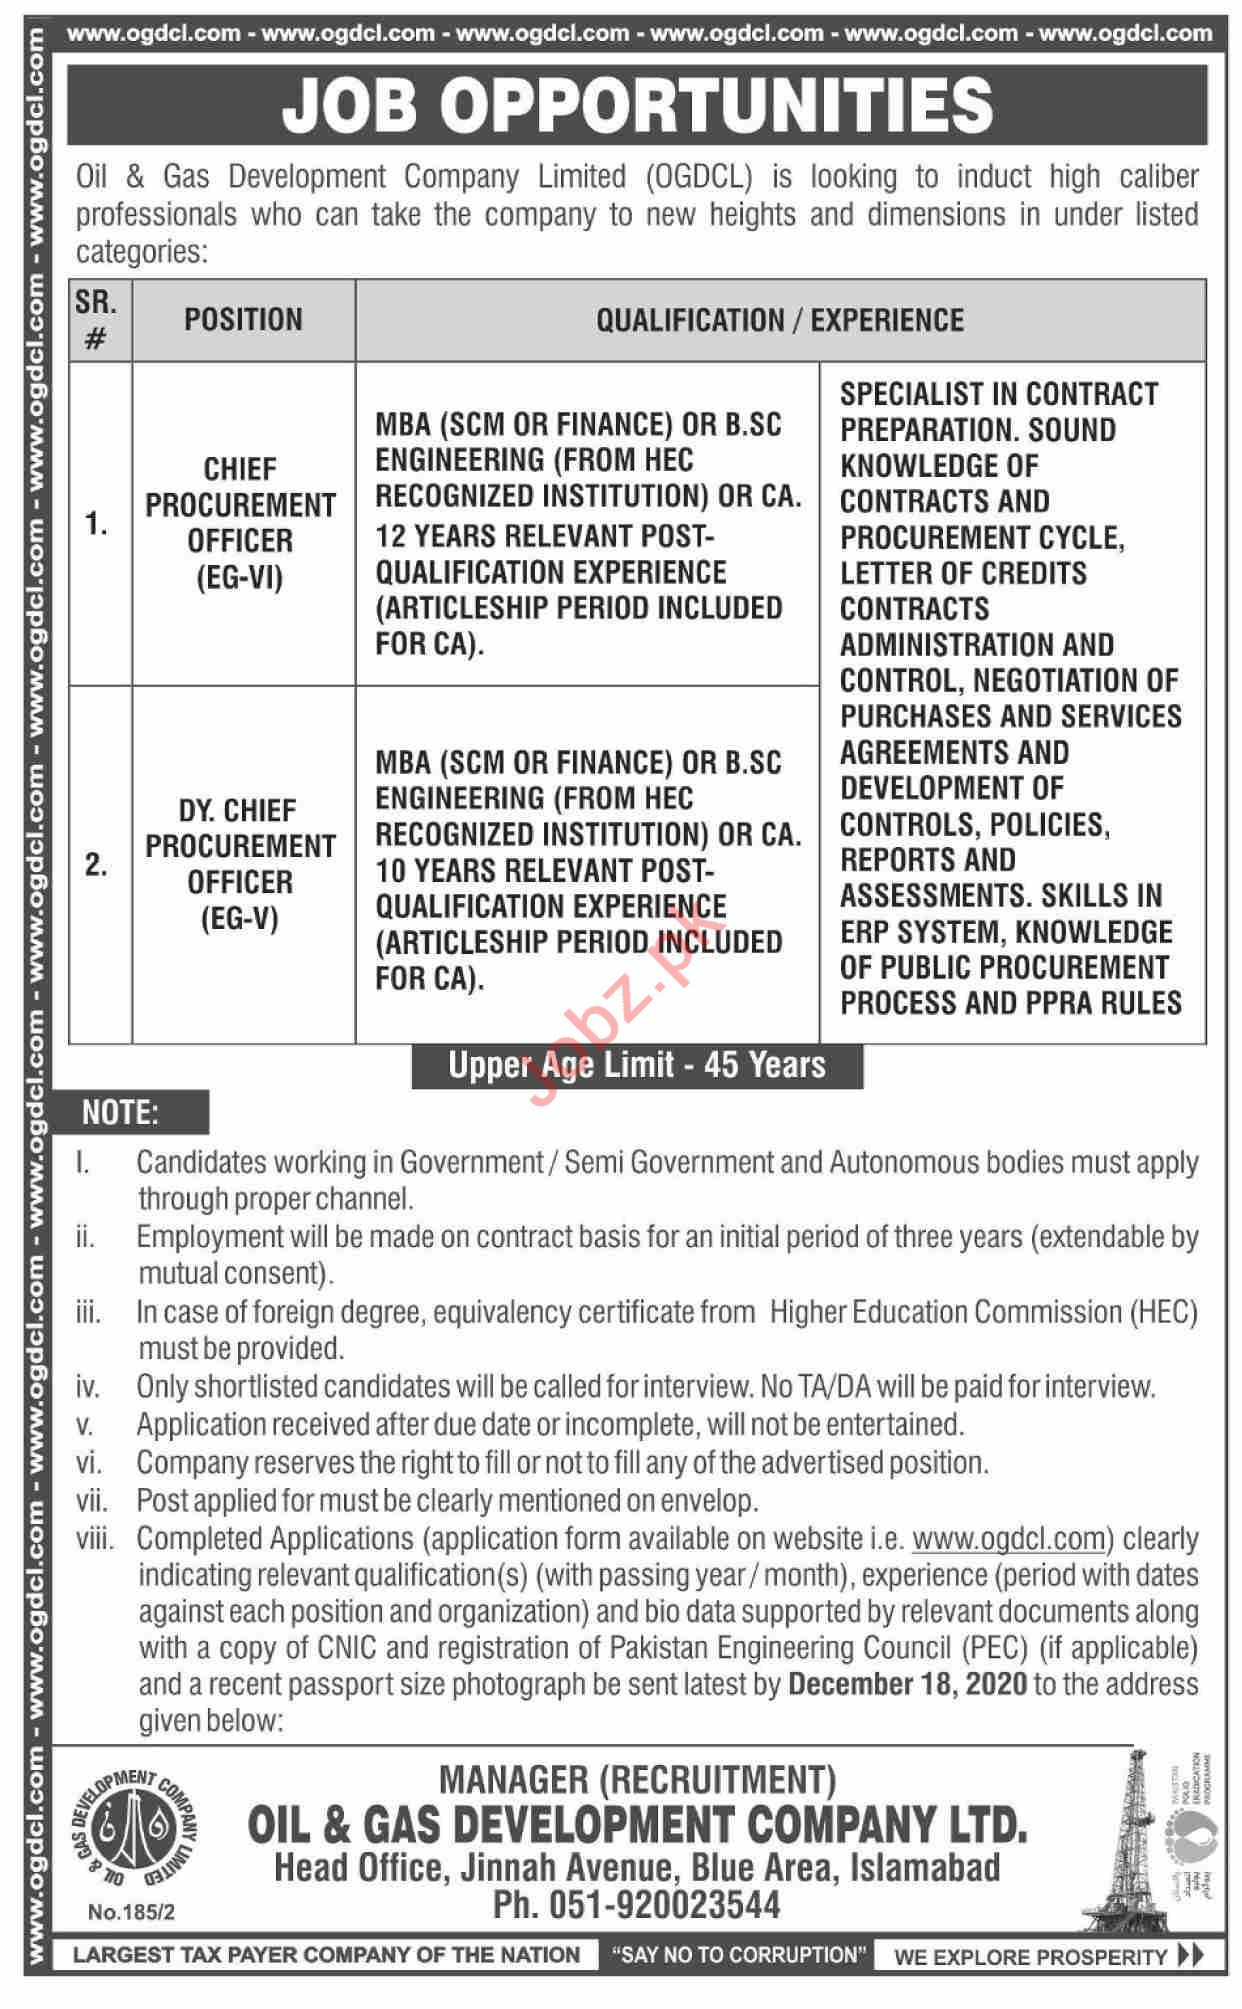 OGDCL Jobs 2020 for Deputy Chief Procurement Officer